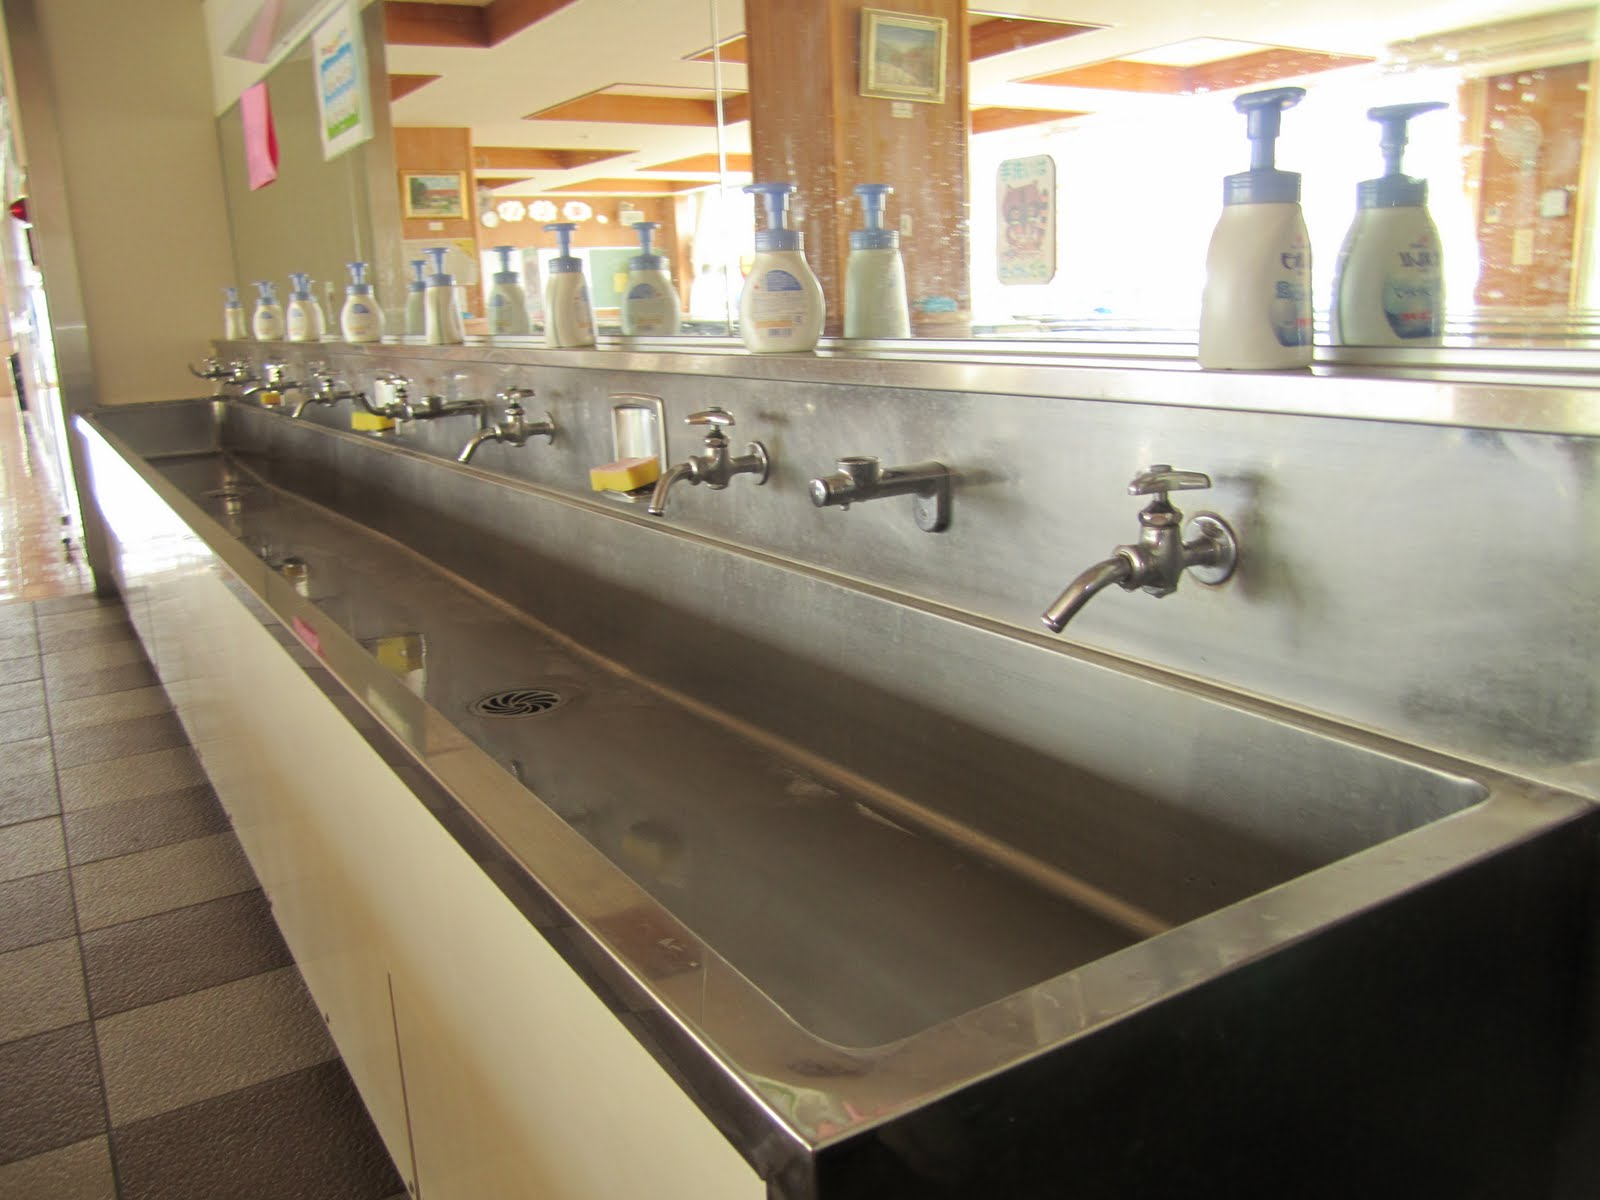 ... Google Search, Trough Sinks, Stainless Commercials, Commercials Trough